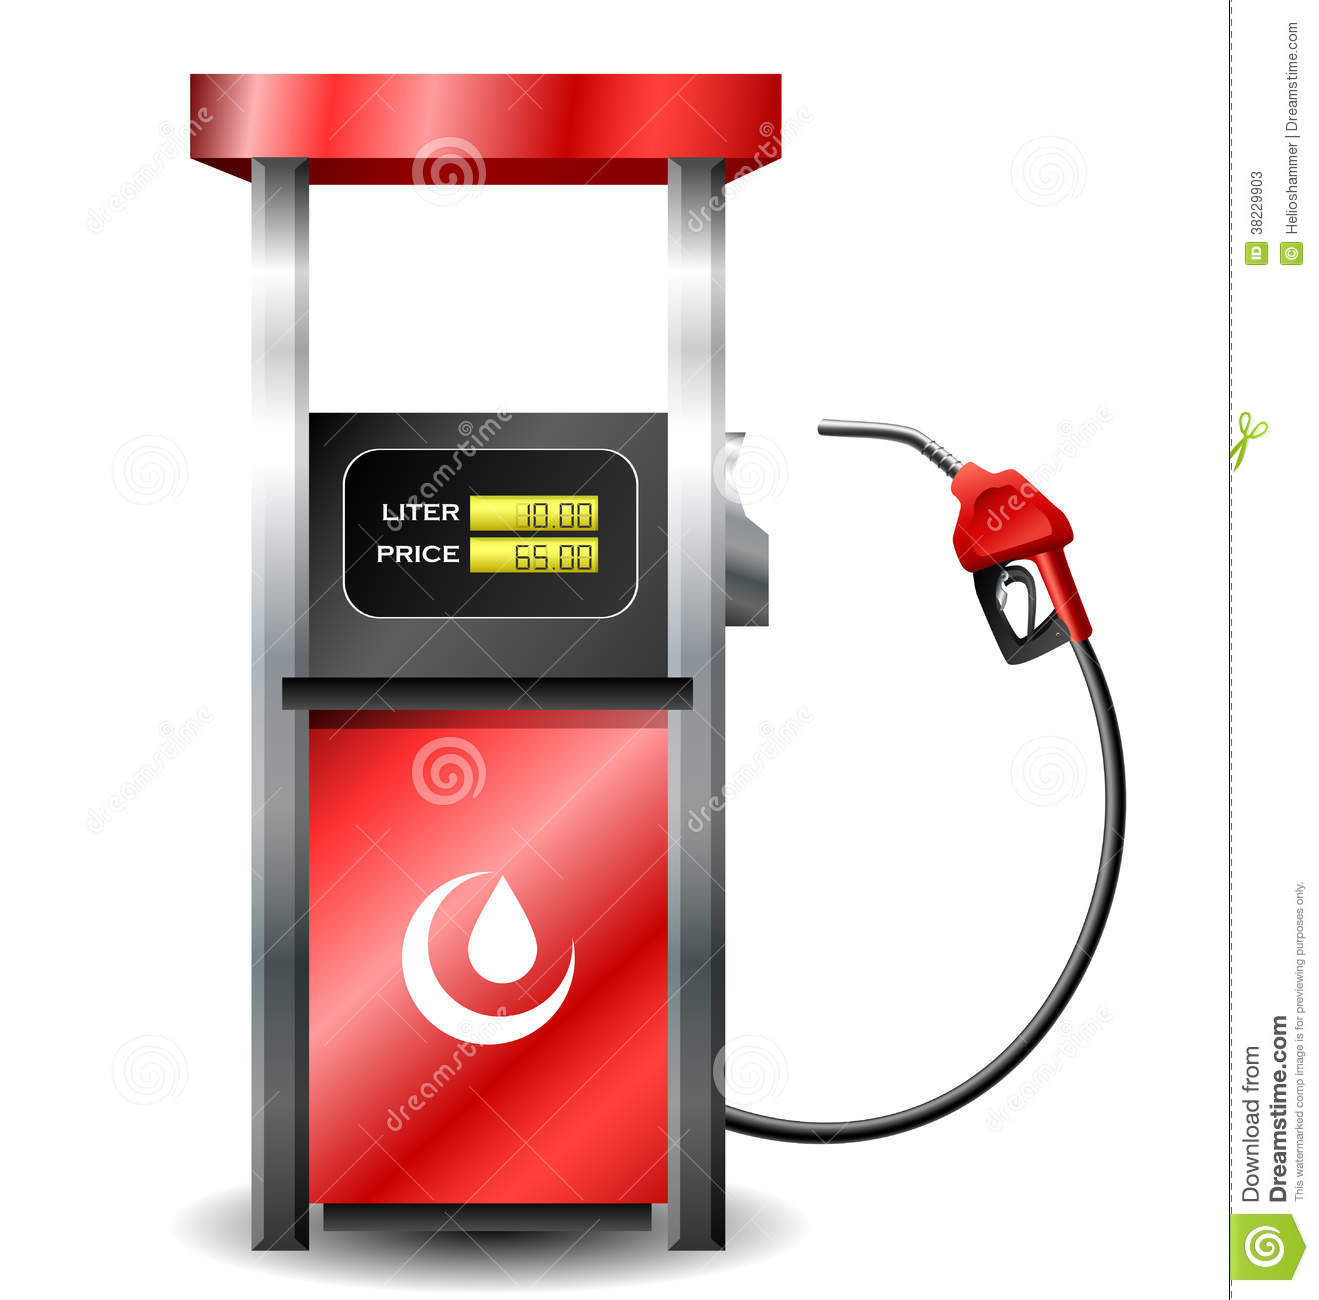 gas station pump with fuel nozzle stock vector